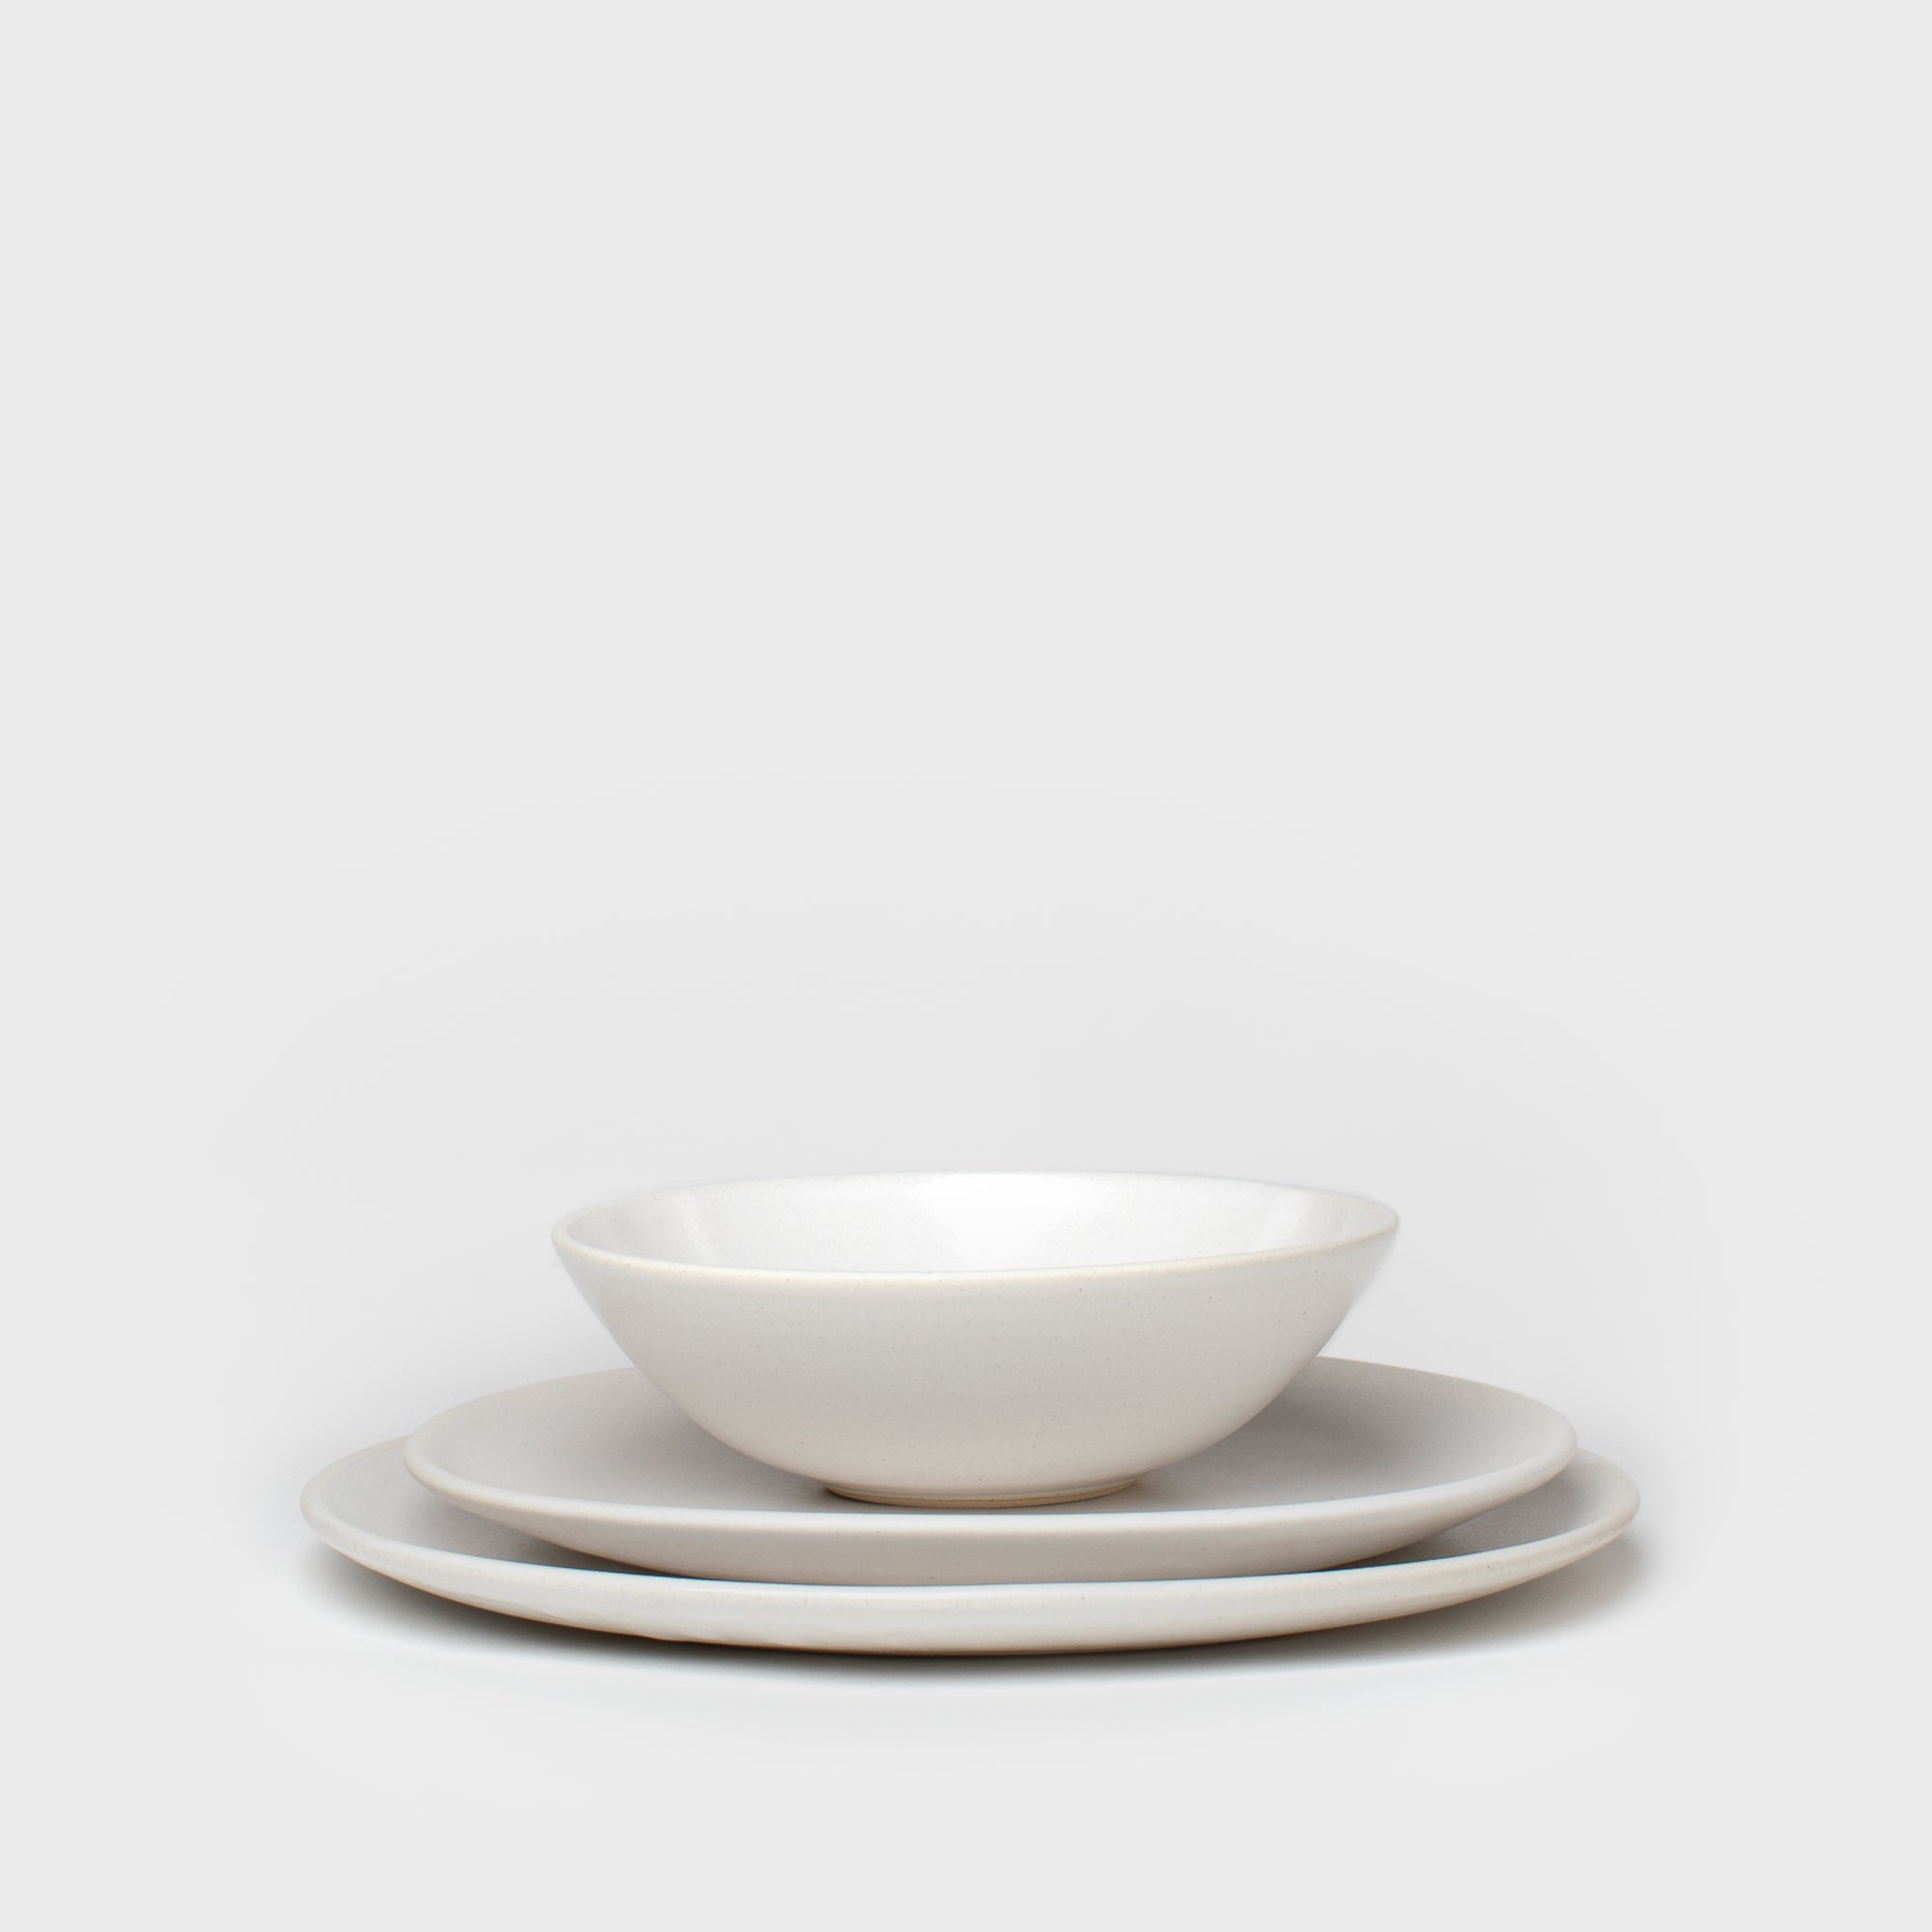 Dinner Plate in White by Meghan Flynn